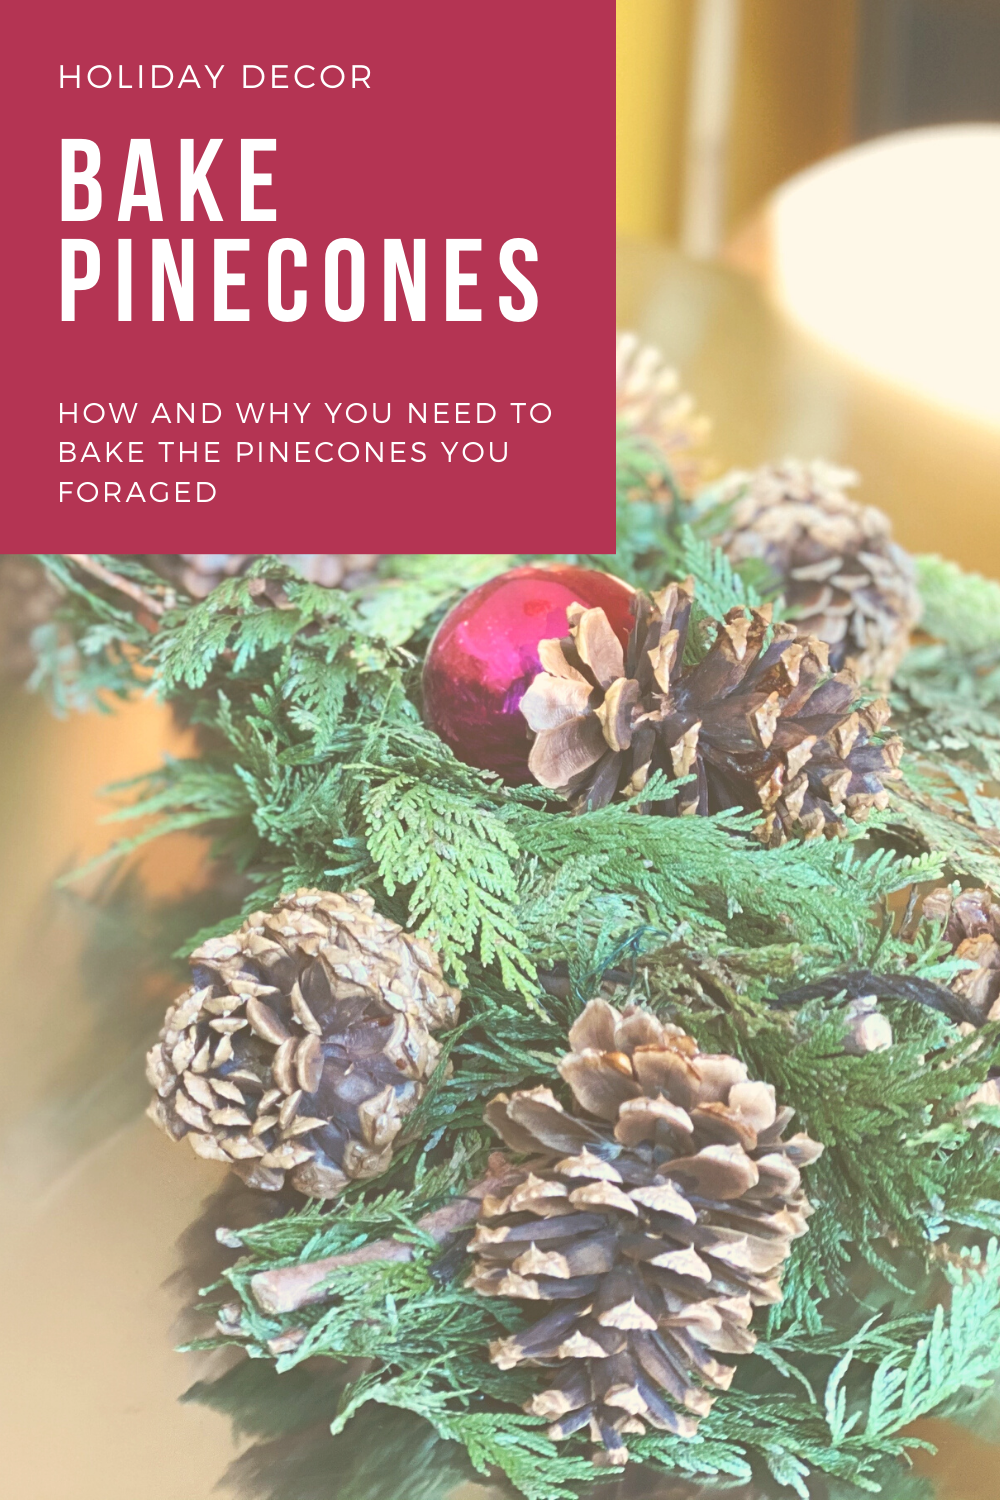 How to bake Pinecones